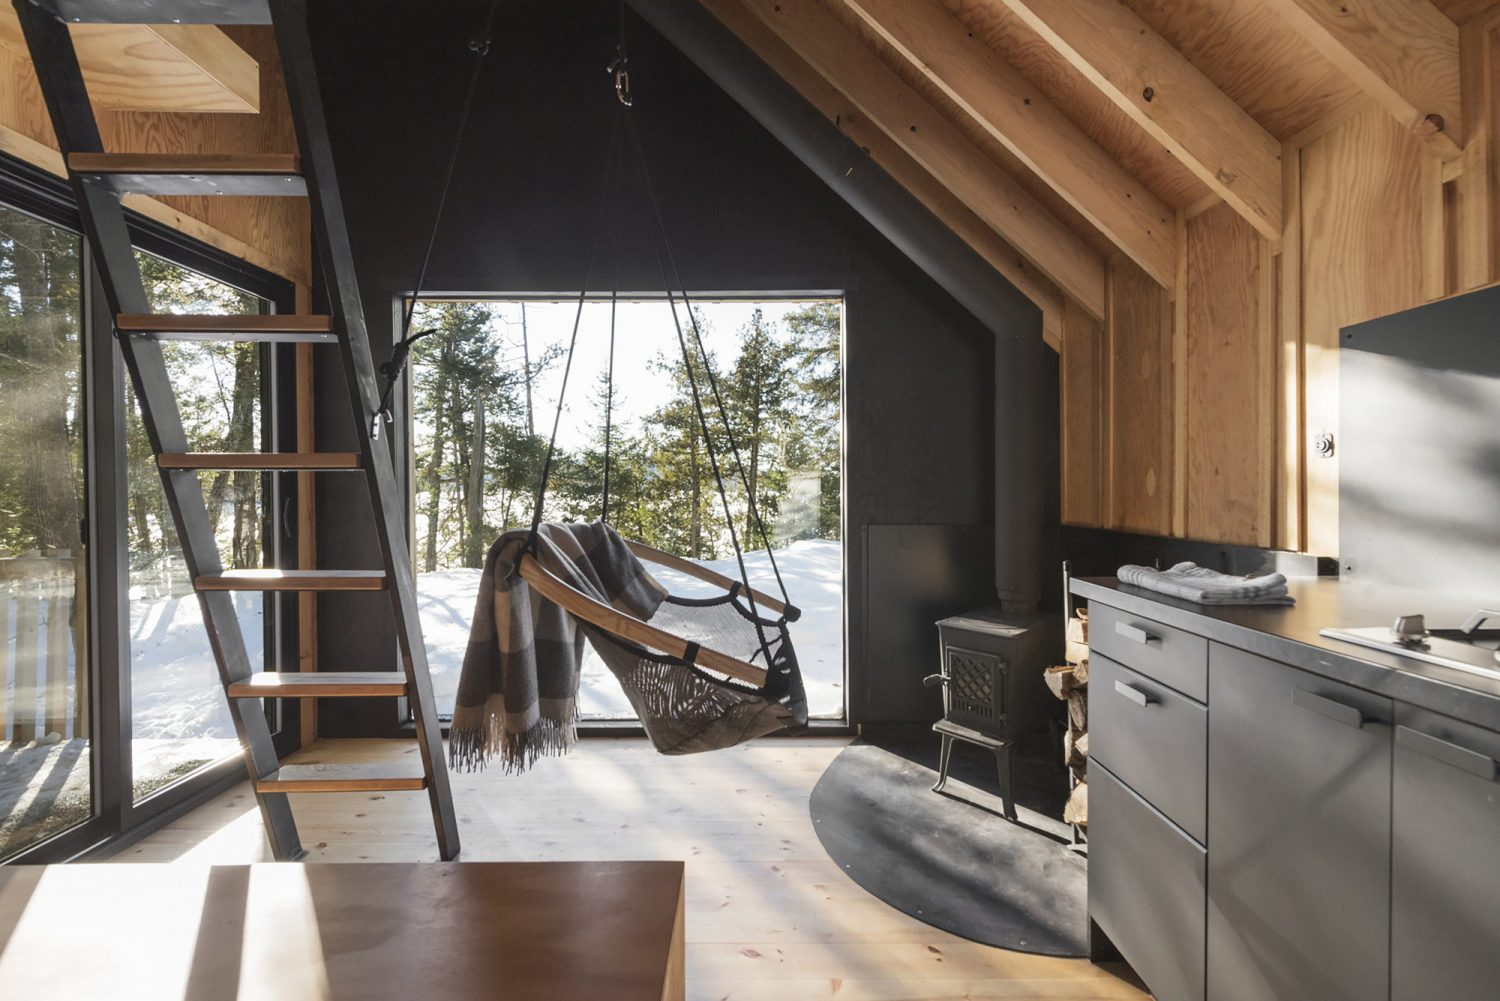 La Pointe | Reinterpretation of an A-Frame Cabin by Atelier L'abri